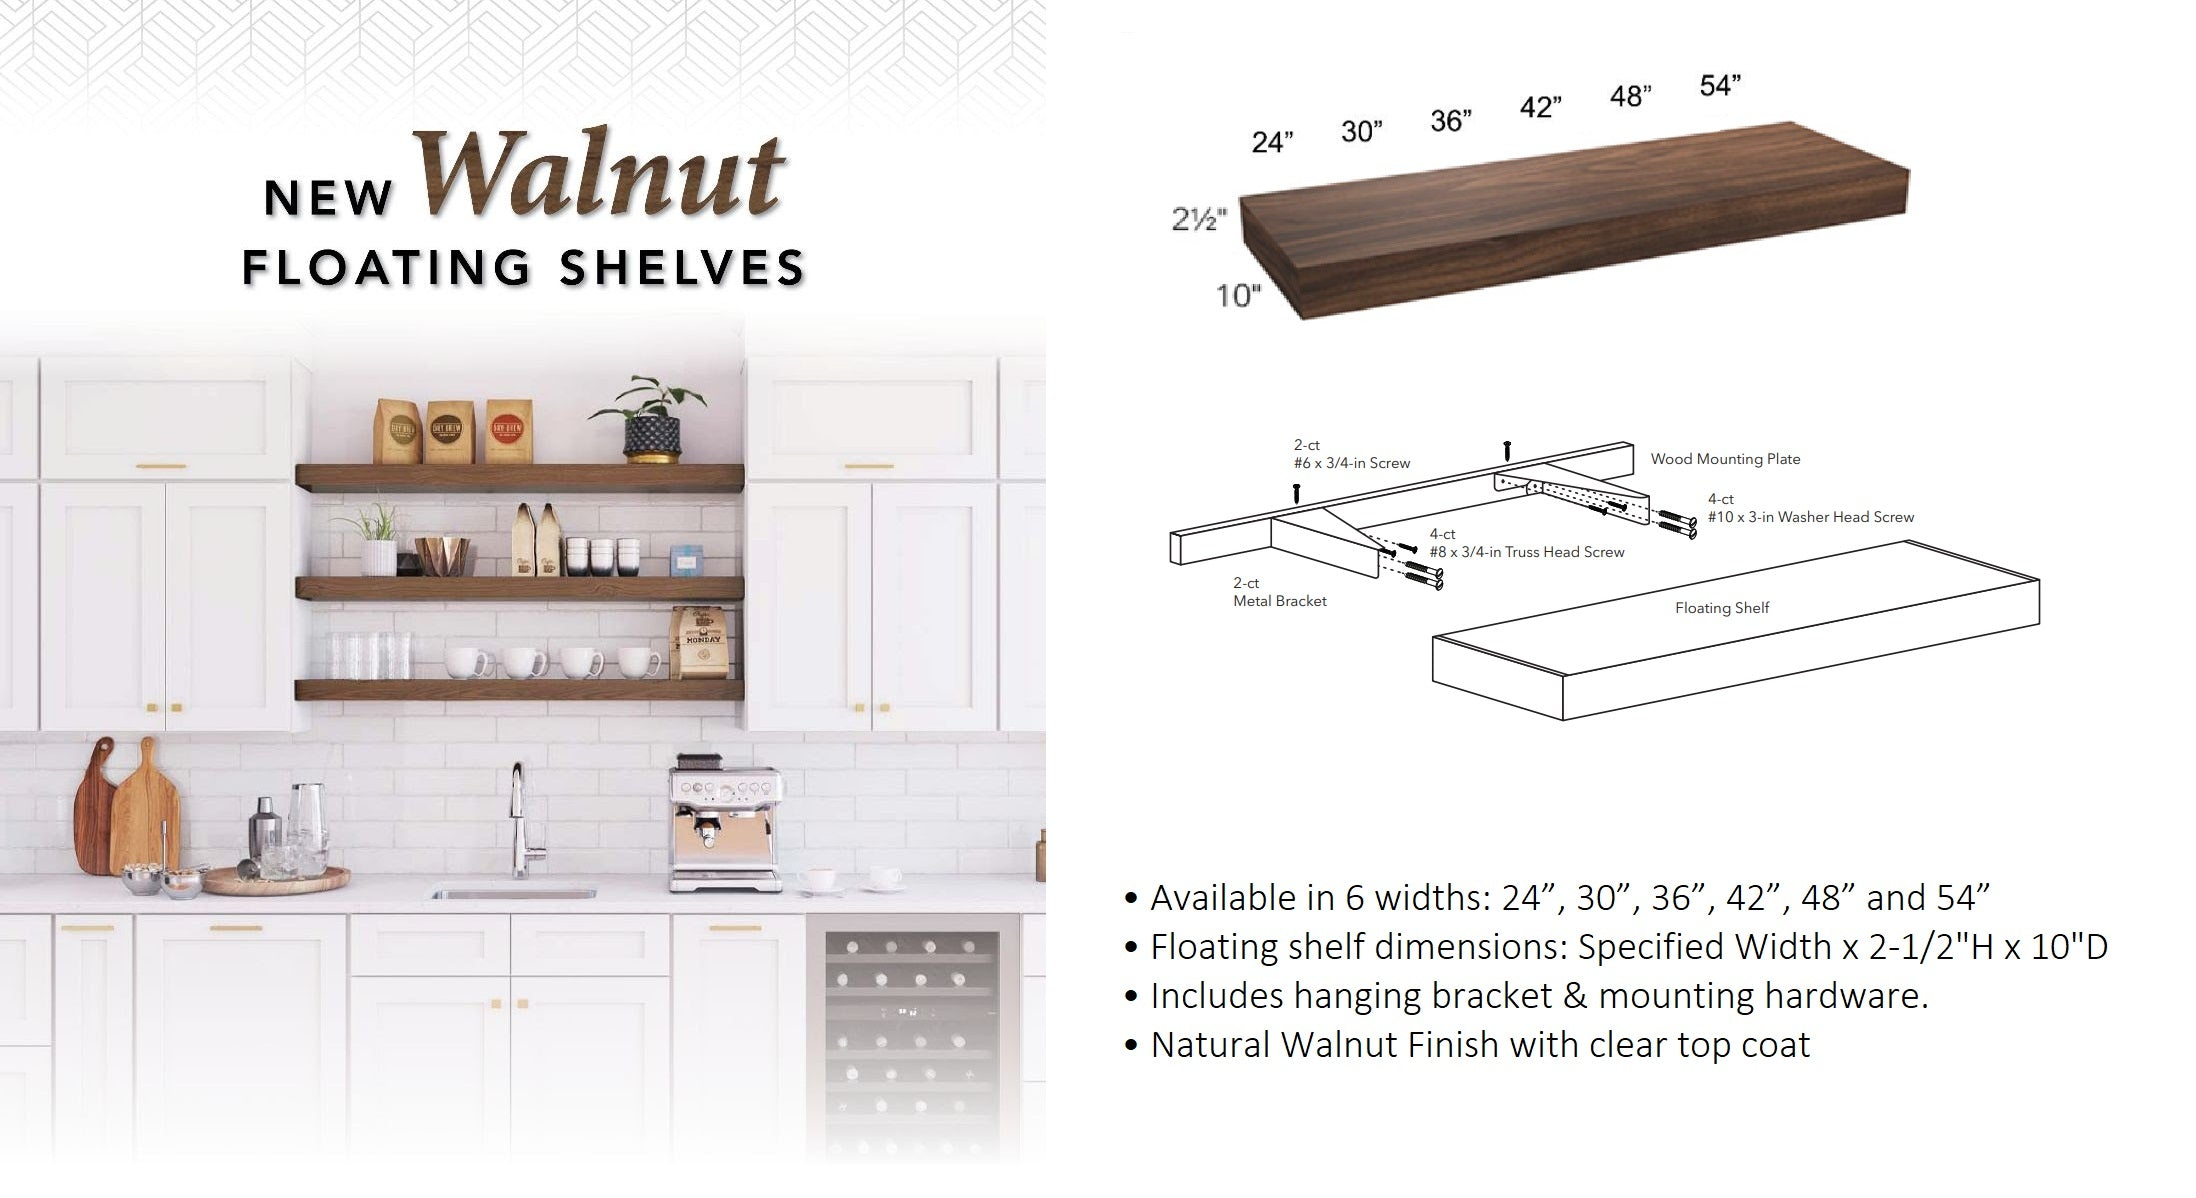 Walnut Floating Shelves by Fabuwood Cabinetry at DirectCabinets.com